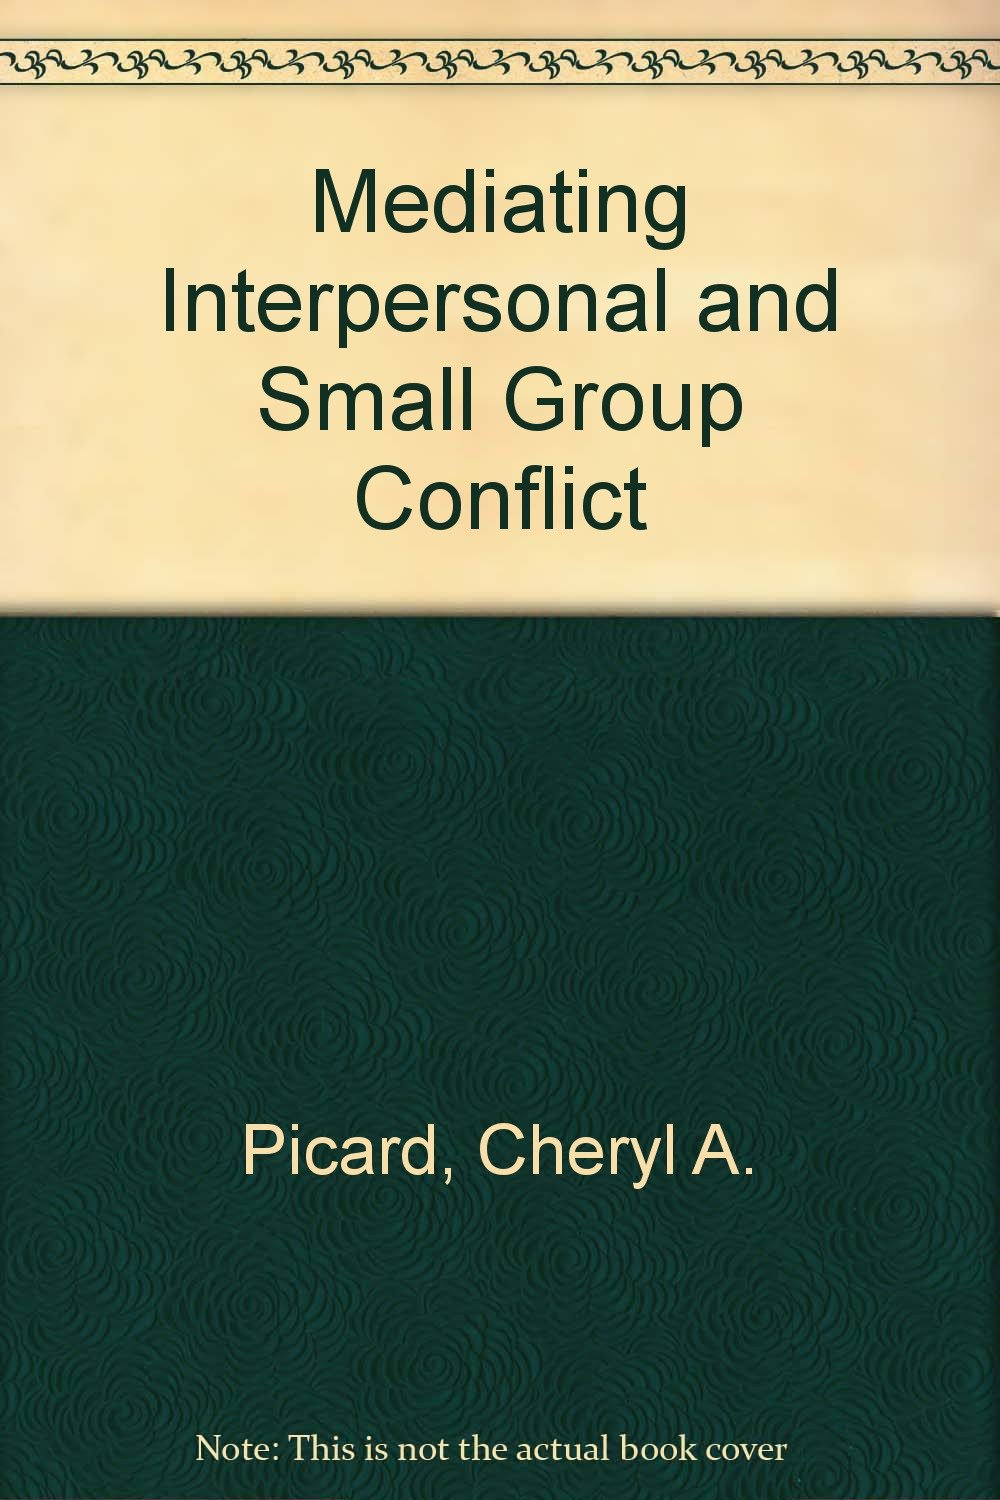 Mediating Interpersonal and Small Group Conflict